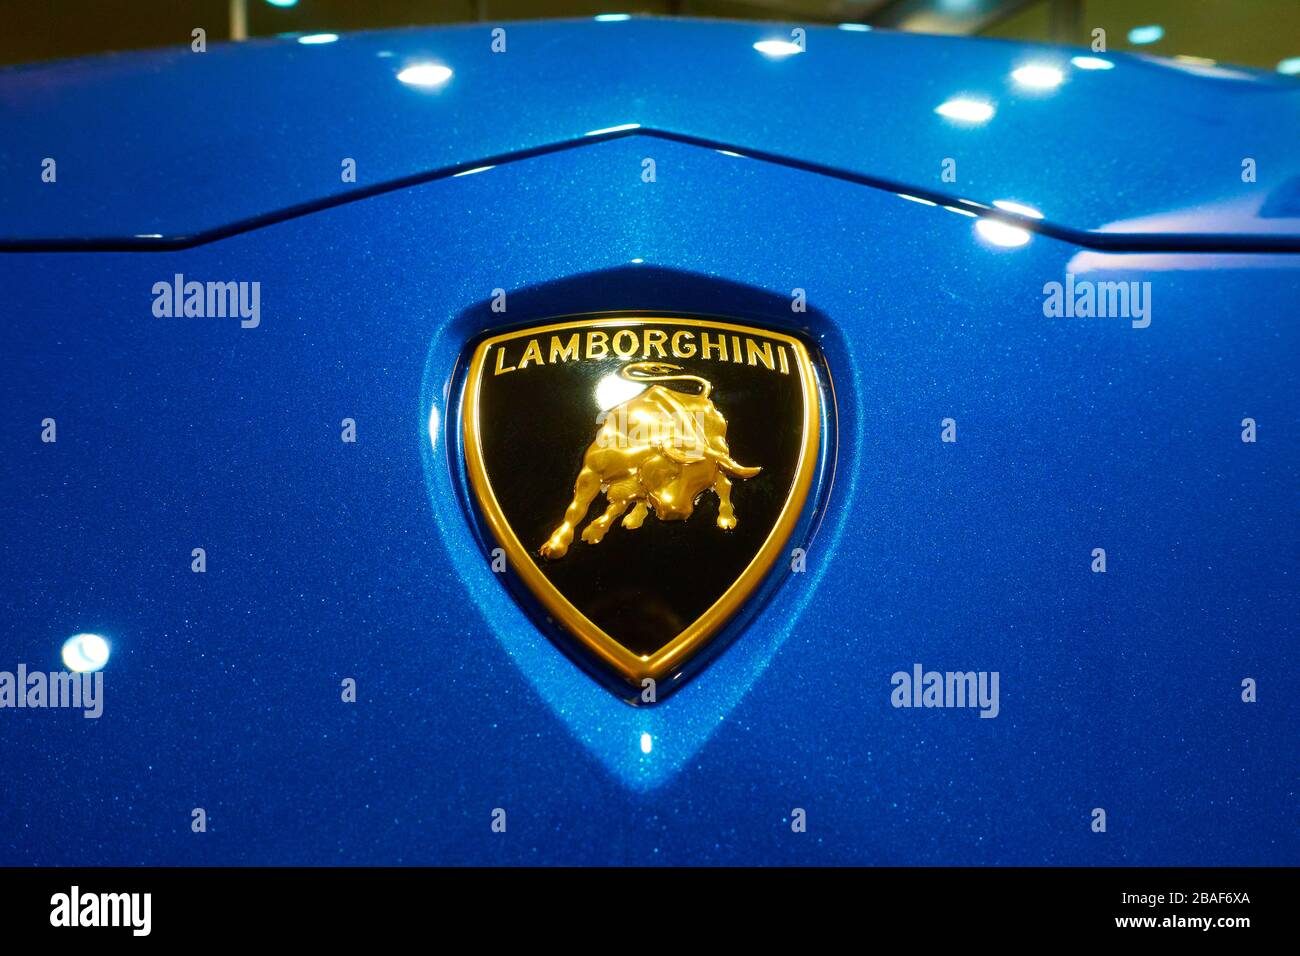 Lamborghini Logo High Resolution Stock Photography And Images Alamy